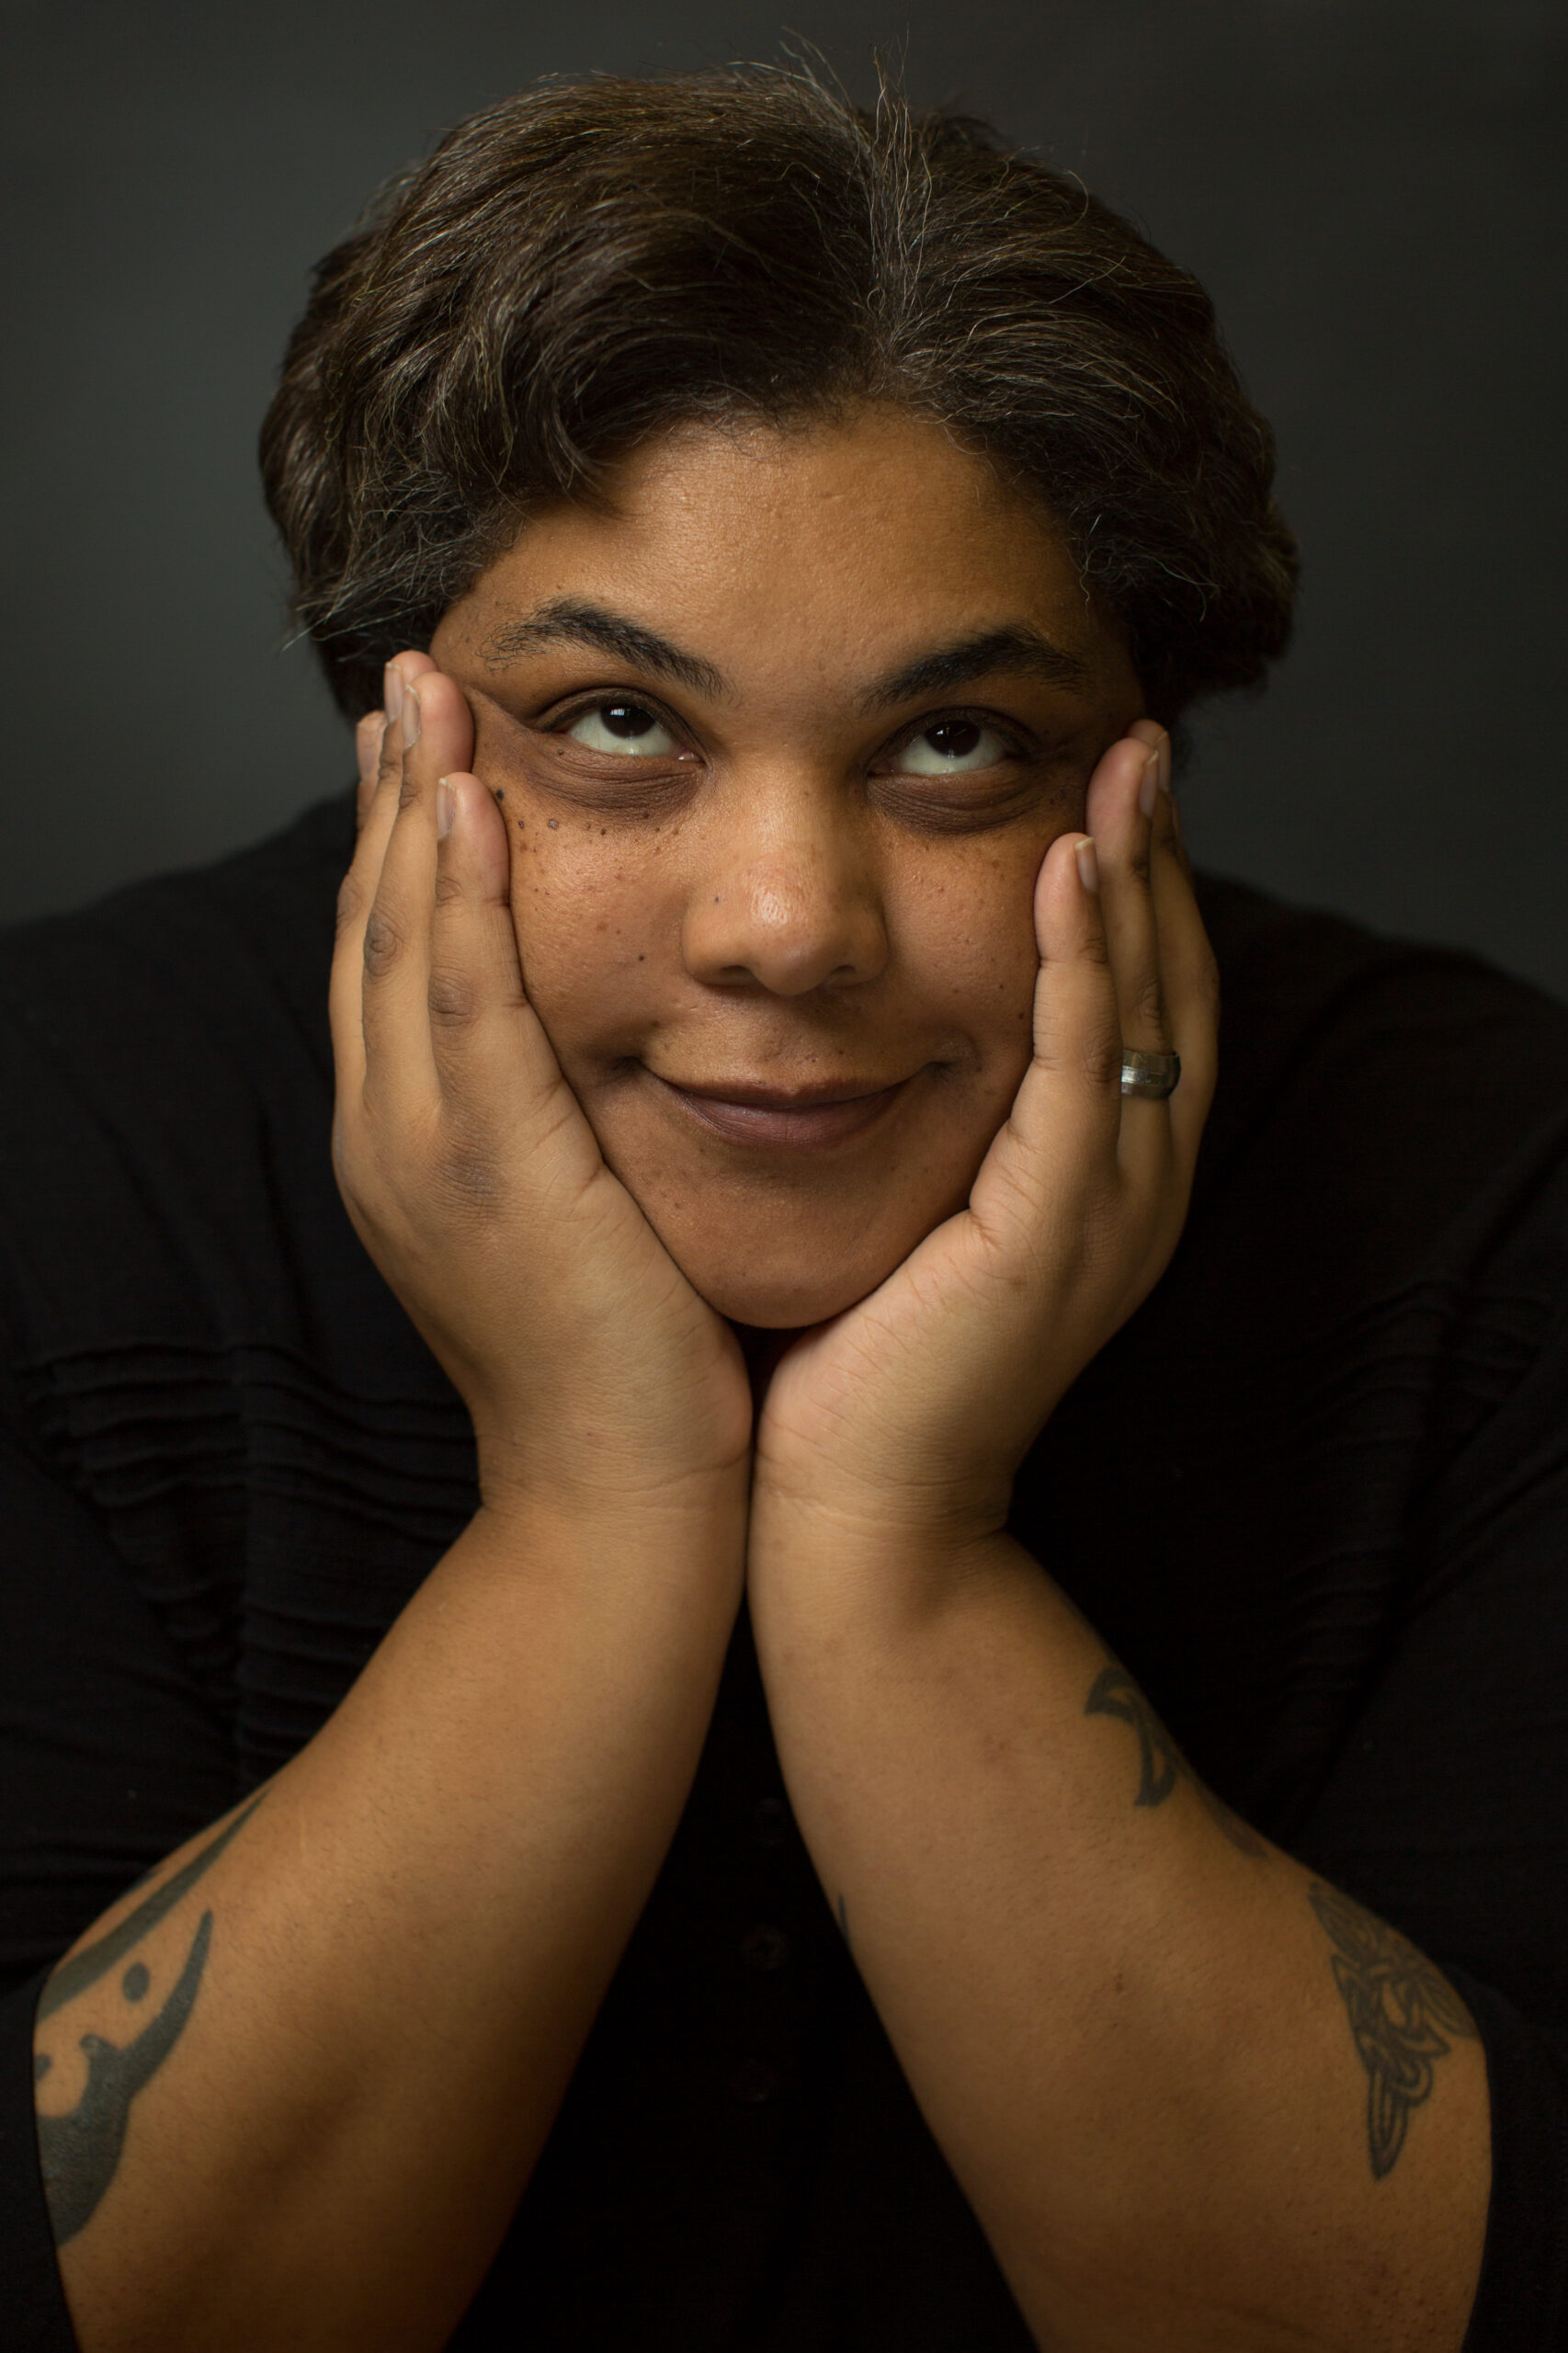 Author Roxane Gay in Coleman hall on the campus of Eastern Illinois University in Charleston, Illinois on January 31, 2014. (Jay Grabiec)